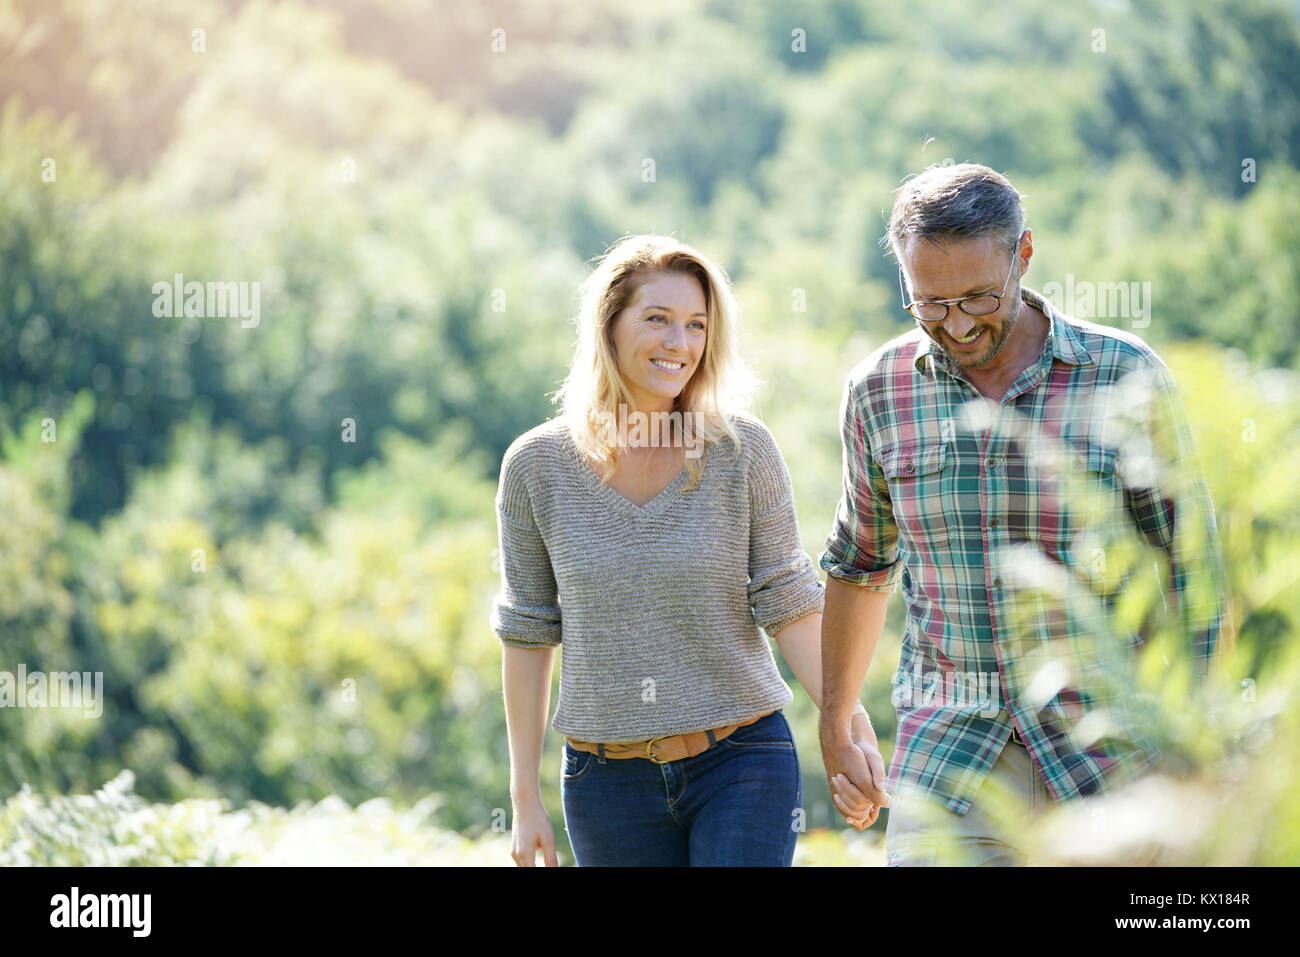 Happy mature couple walking in countryside on sunny day - Stock Image